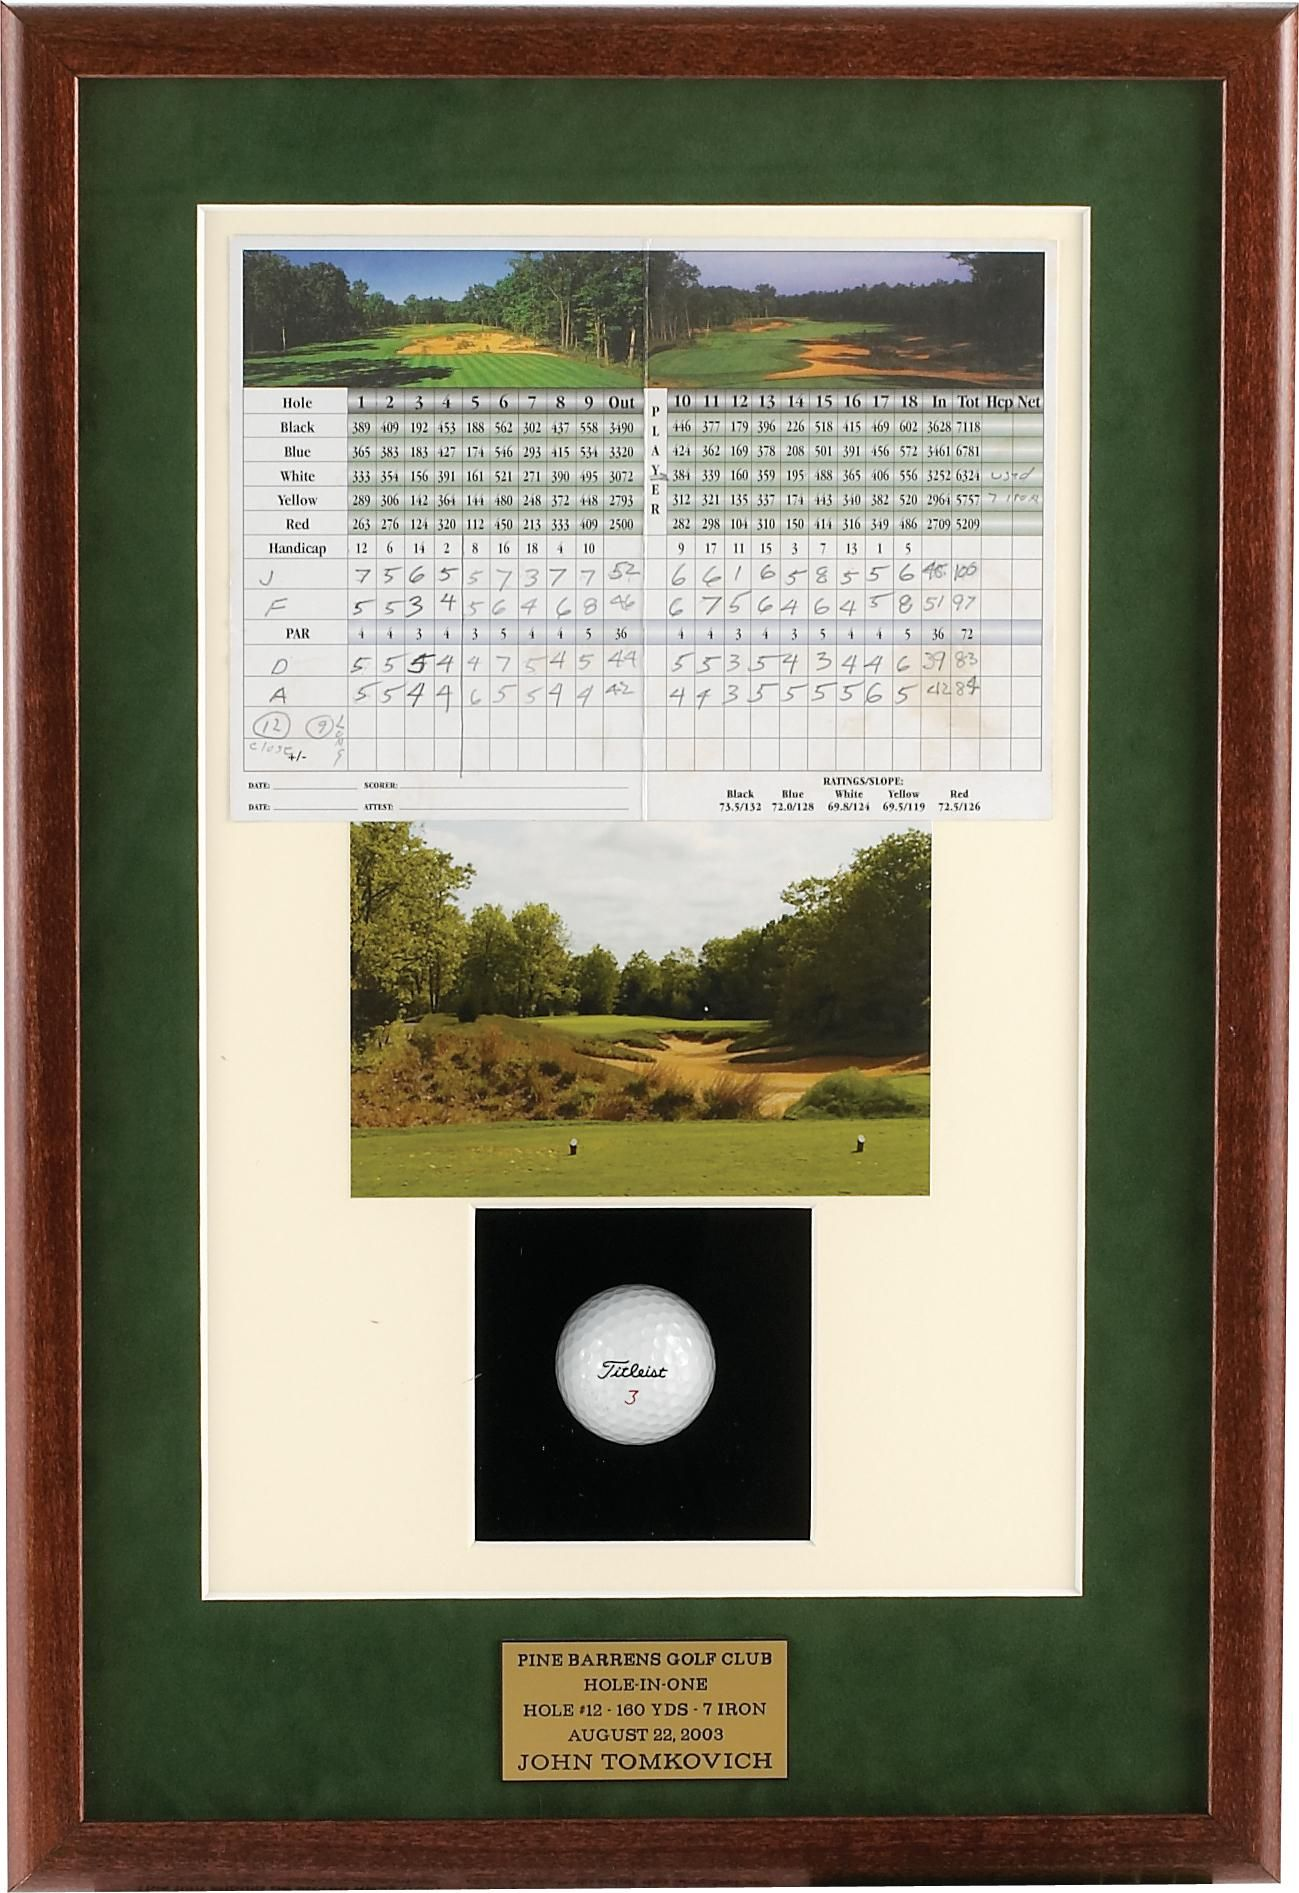 Getting This Hole In One Shadow Box For My First Hole In One Bucket List Hope I Can Get Lucky Shadow Box Hole In One Shadow Boxes